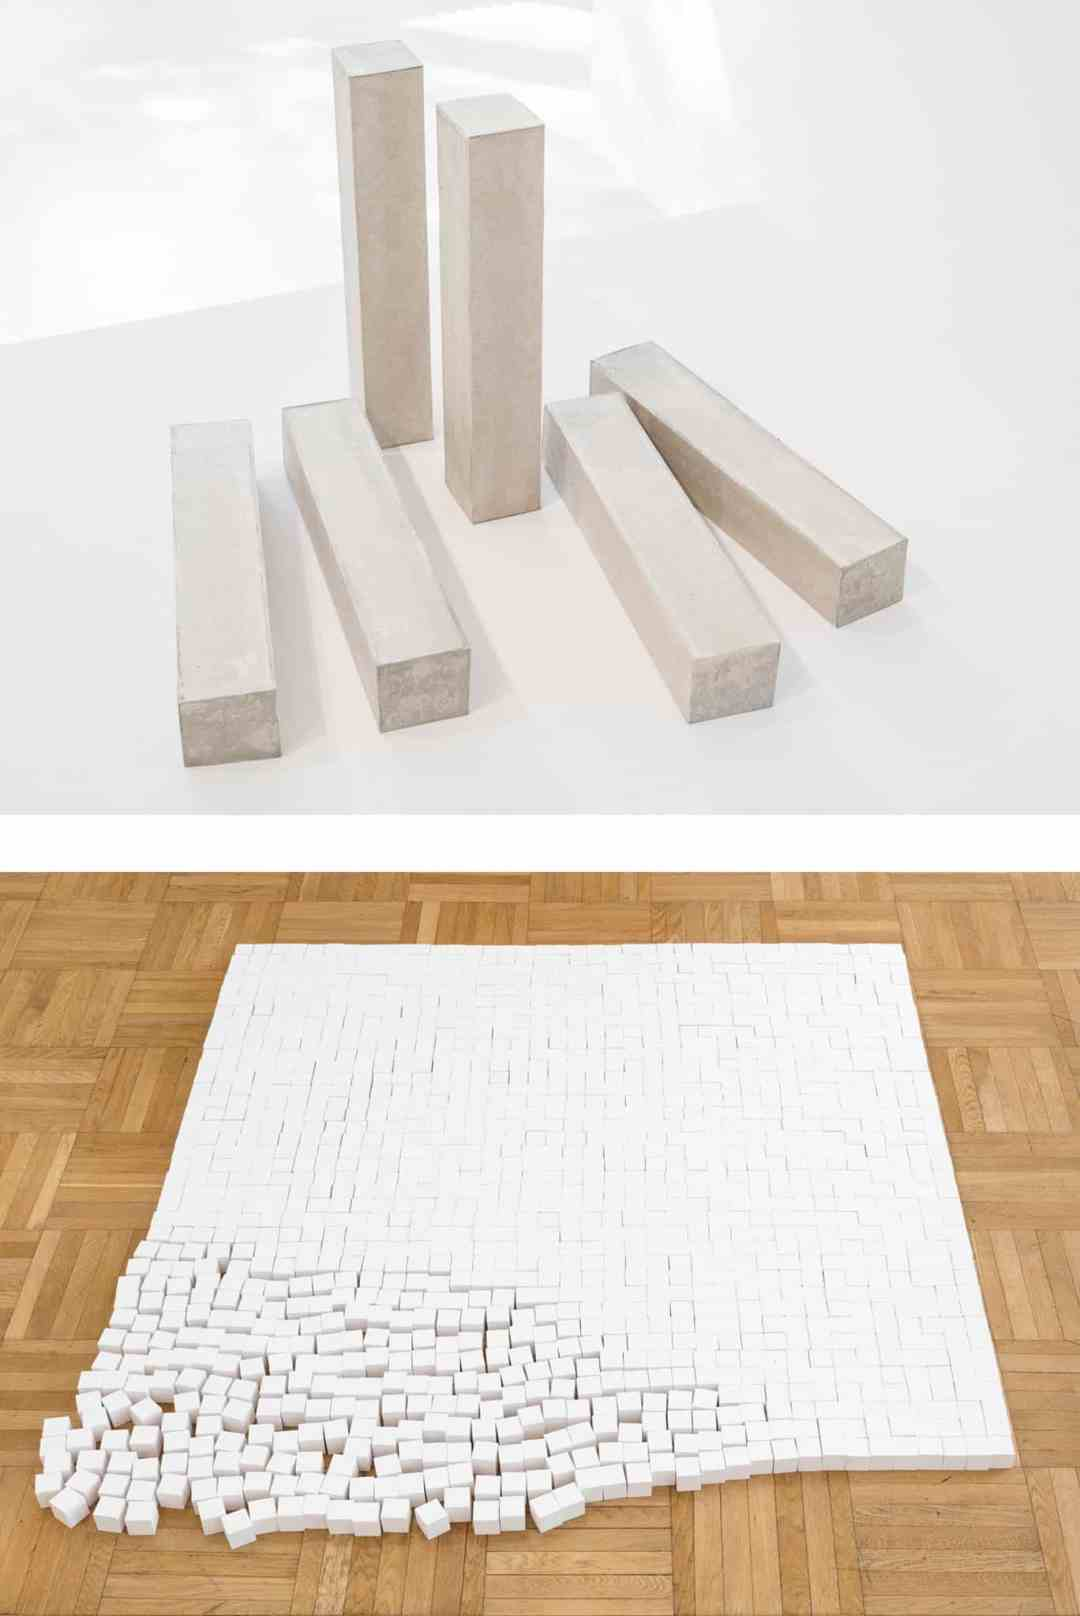 1. Michał Budny_Space of Painting (after Agnes Martin's Untitled, 1978), 2018_Galerie Nordenhake 2. Michał Budny_2018_Space_Painting_Spactrum_Galerie nächst St. Stephan Rosemarie Schwarzwälder